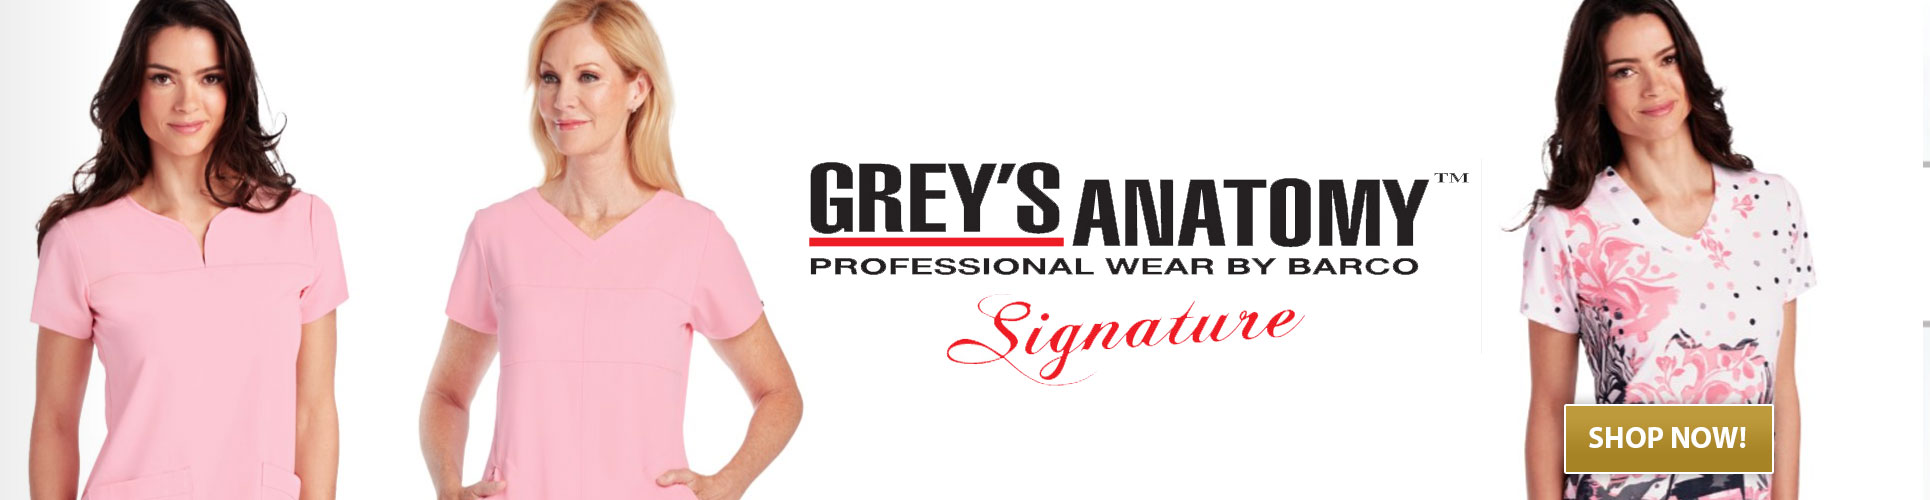 shop-greys-signature.jpg